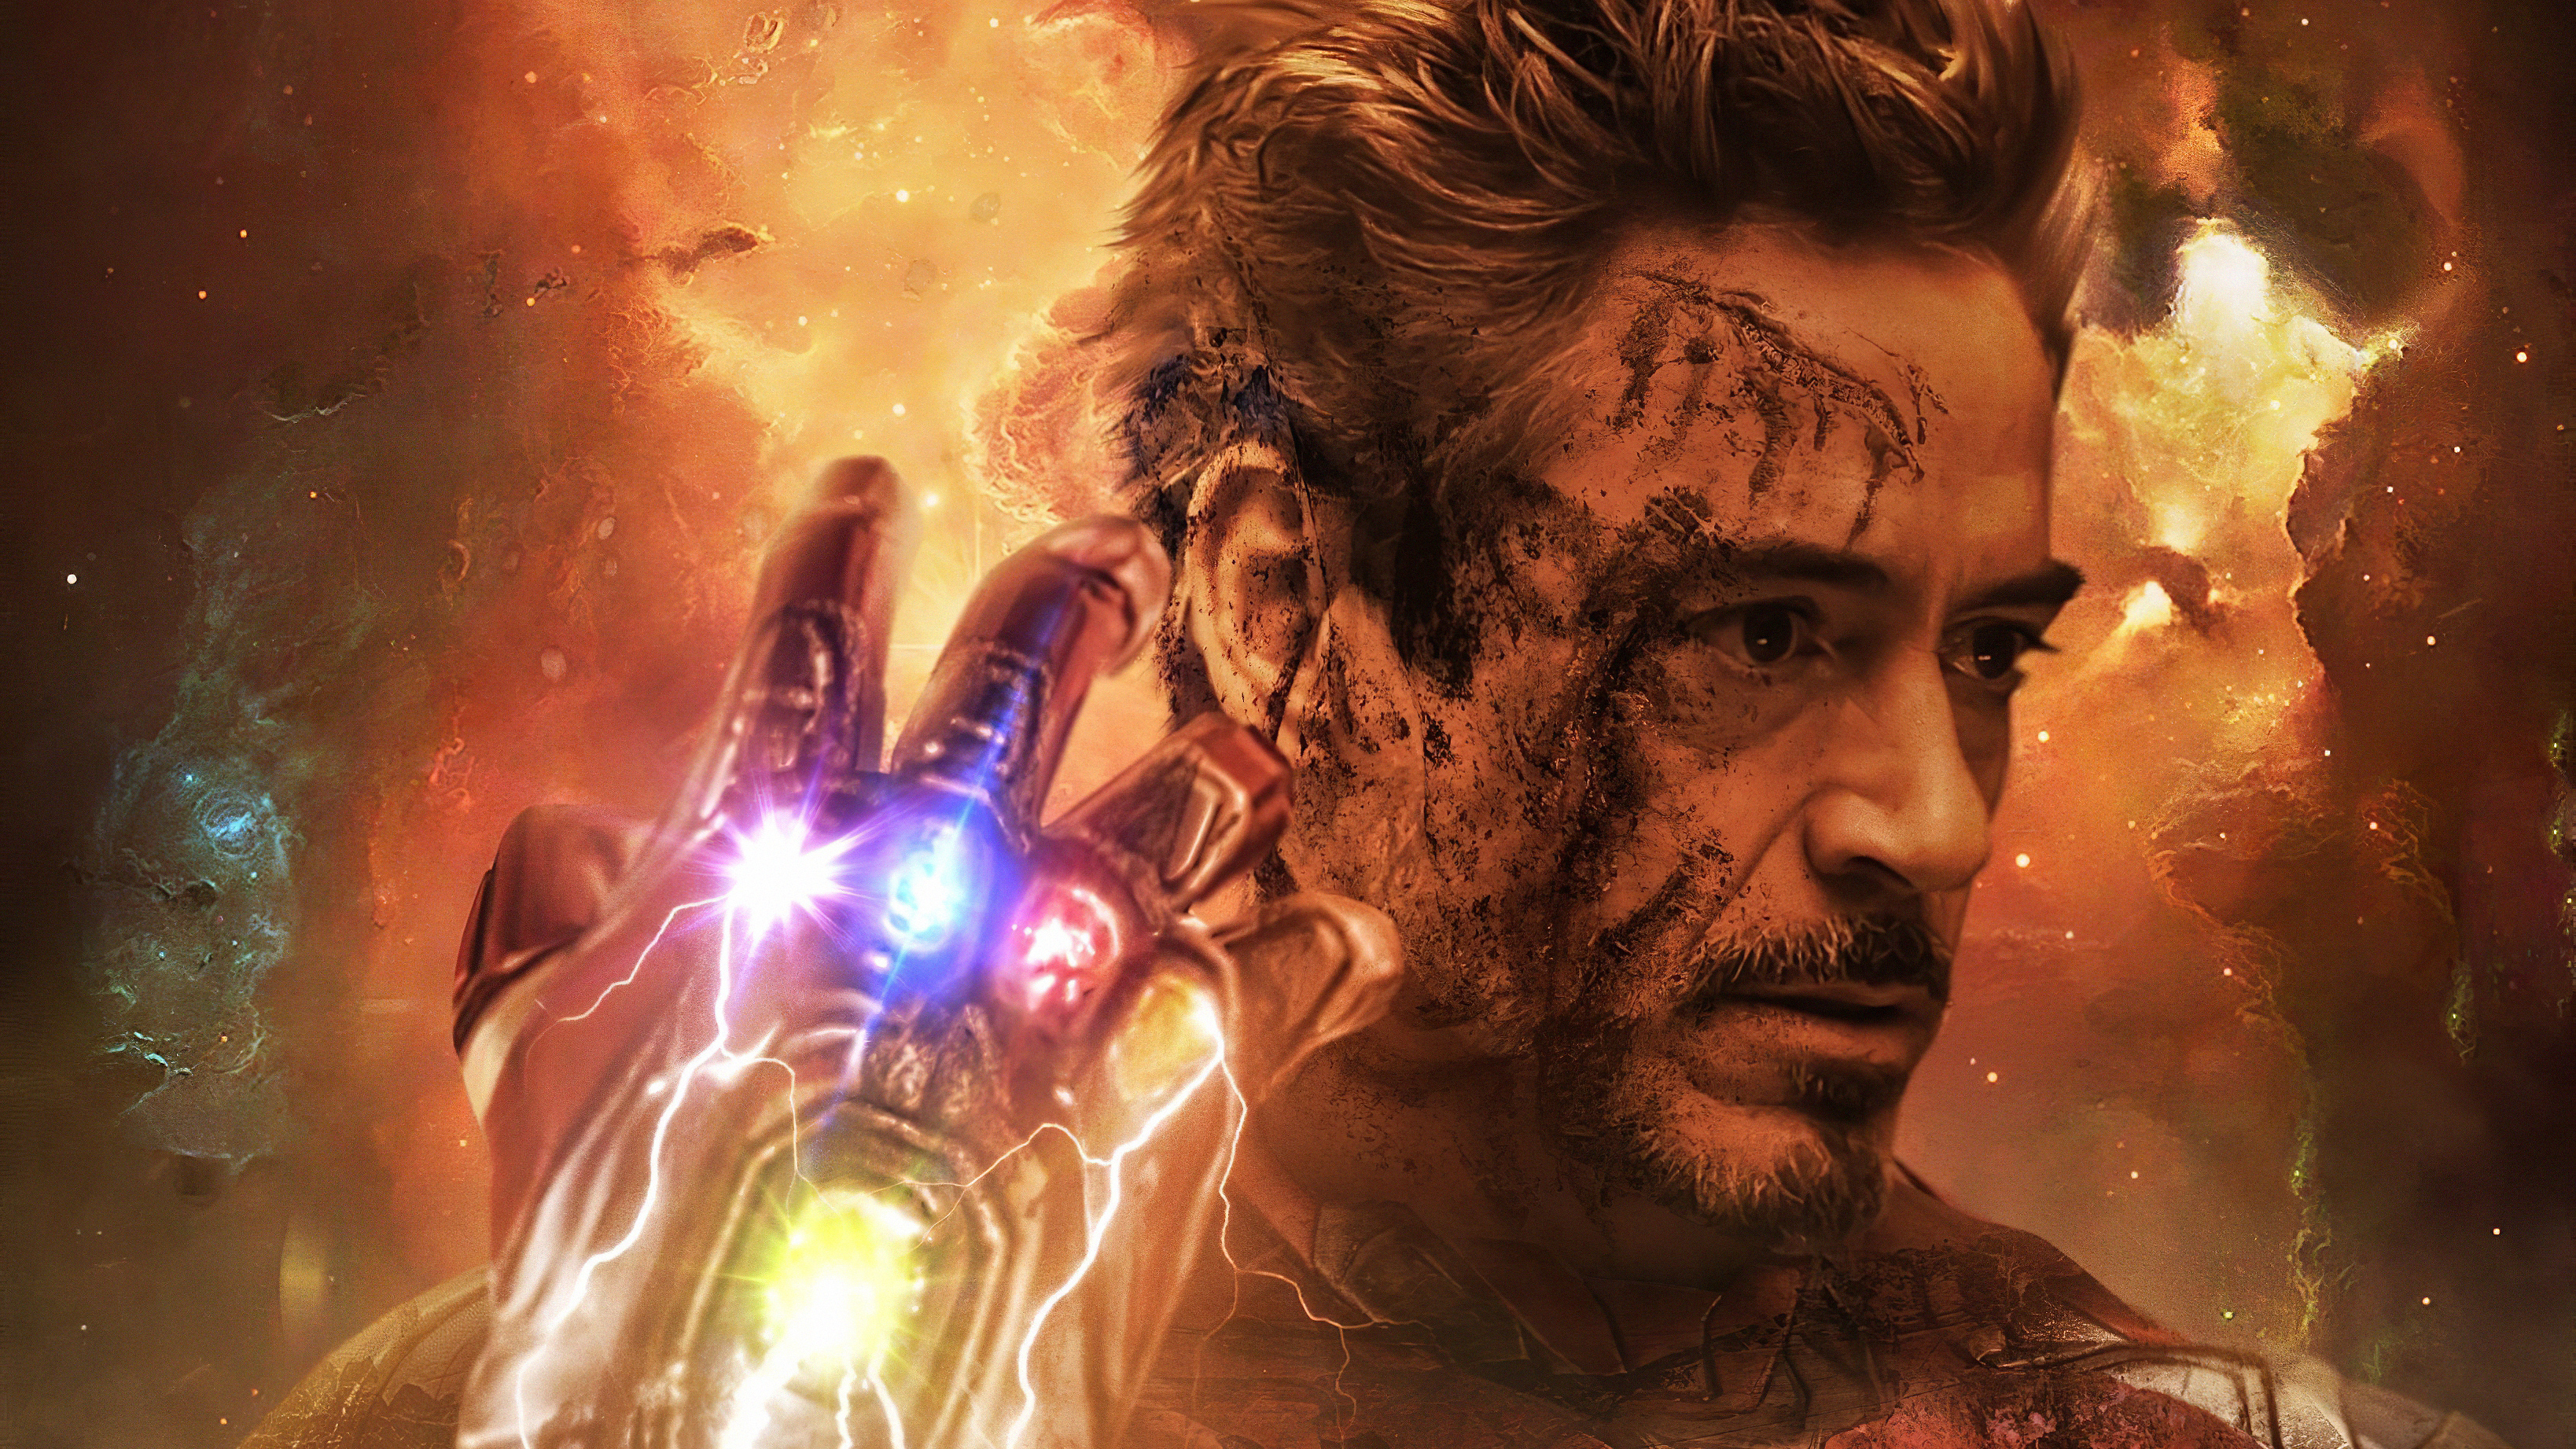 1360x765 Iron Man Infinity Gauntlet Stones 1360x765 Resolution Hd